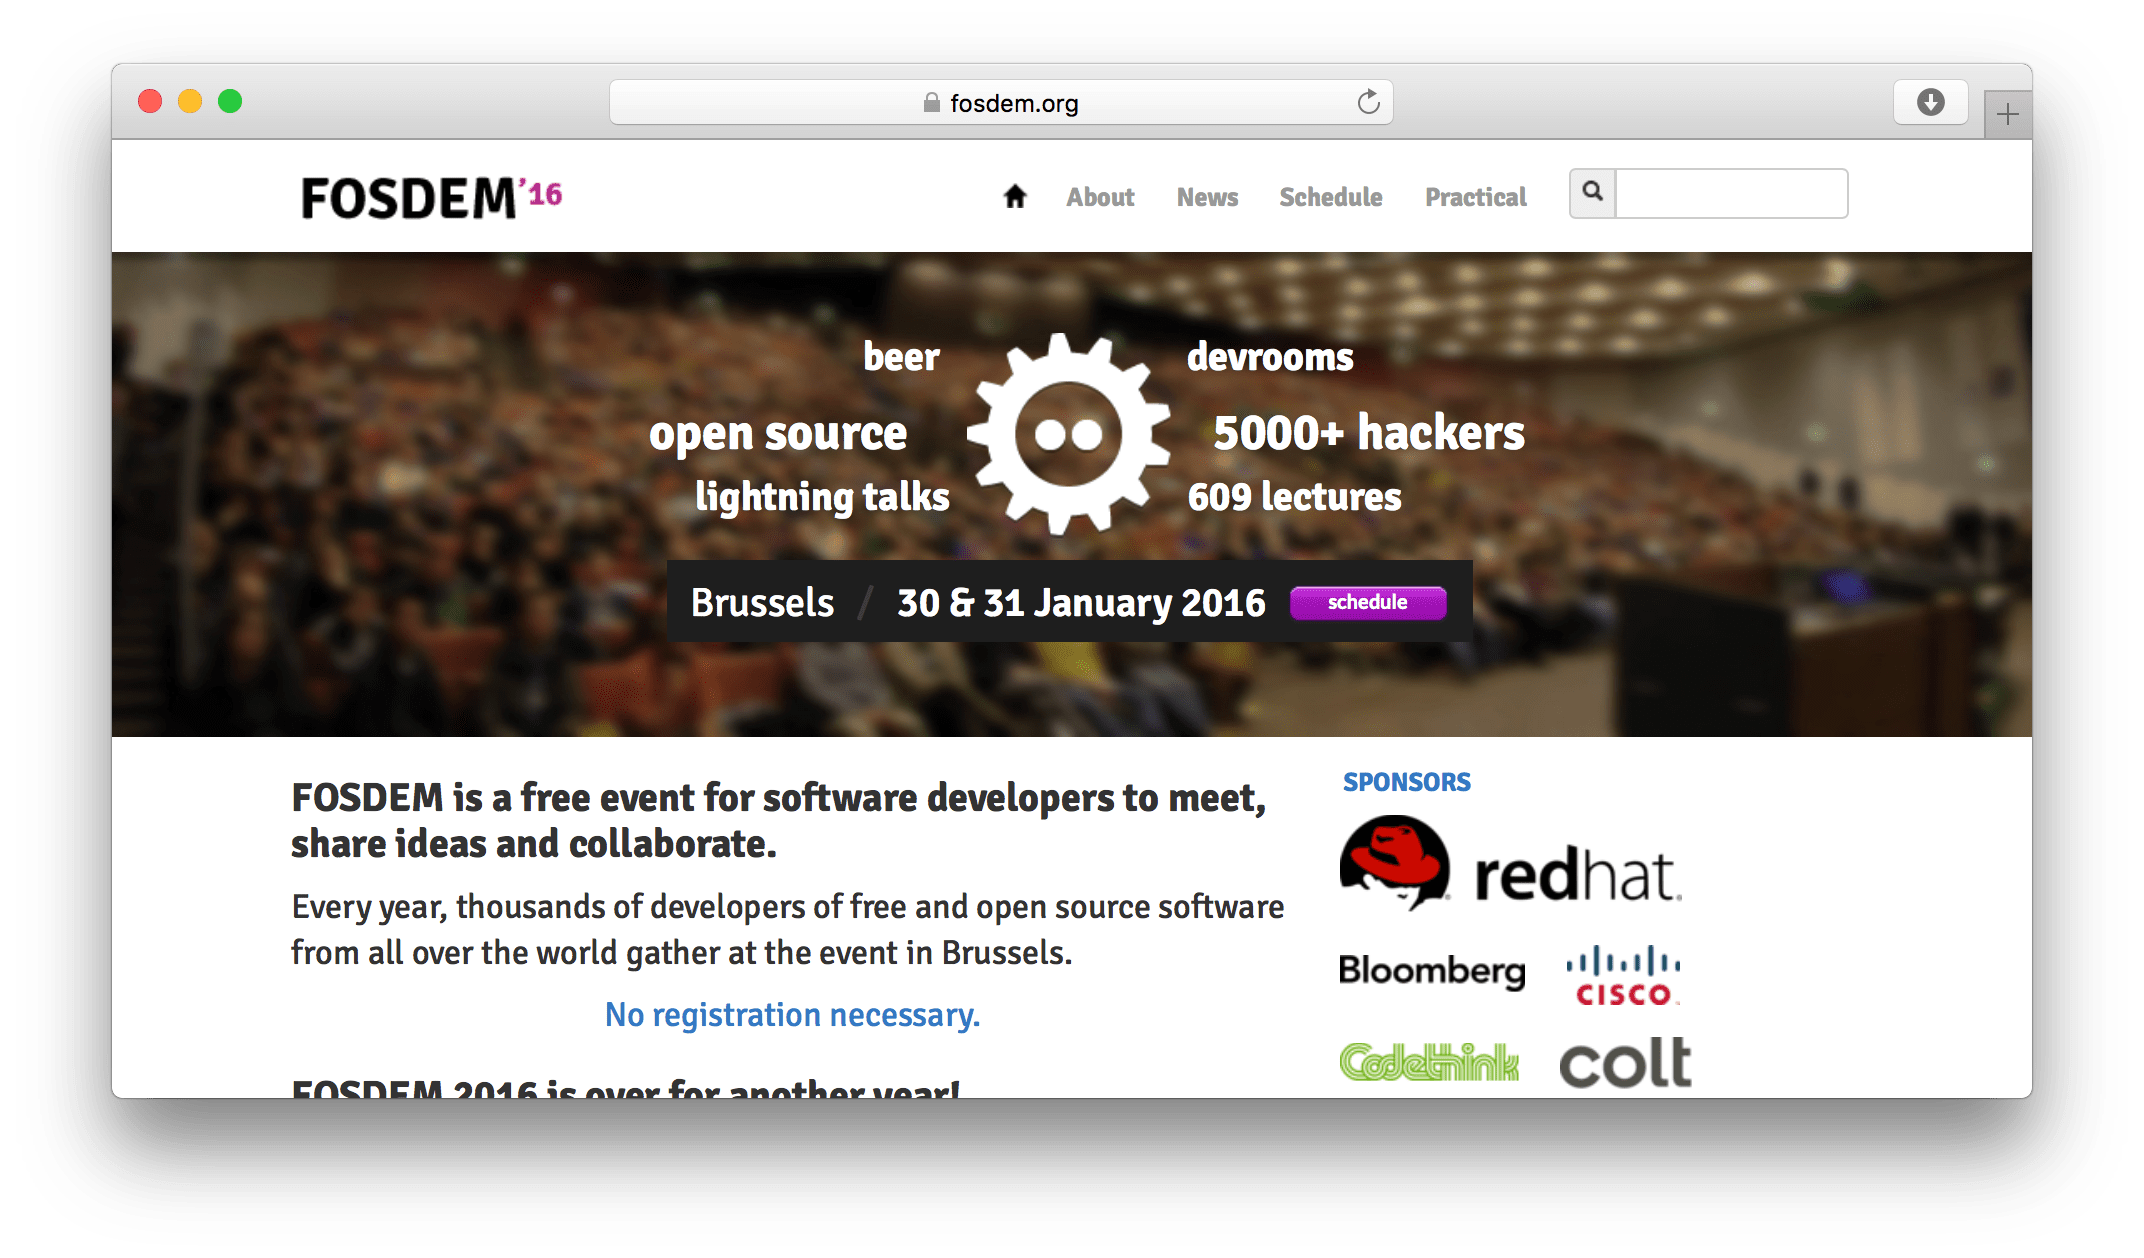 FOSDEM website screenshot